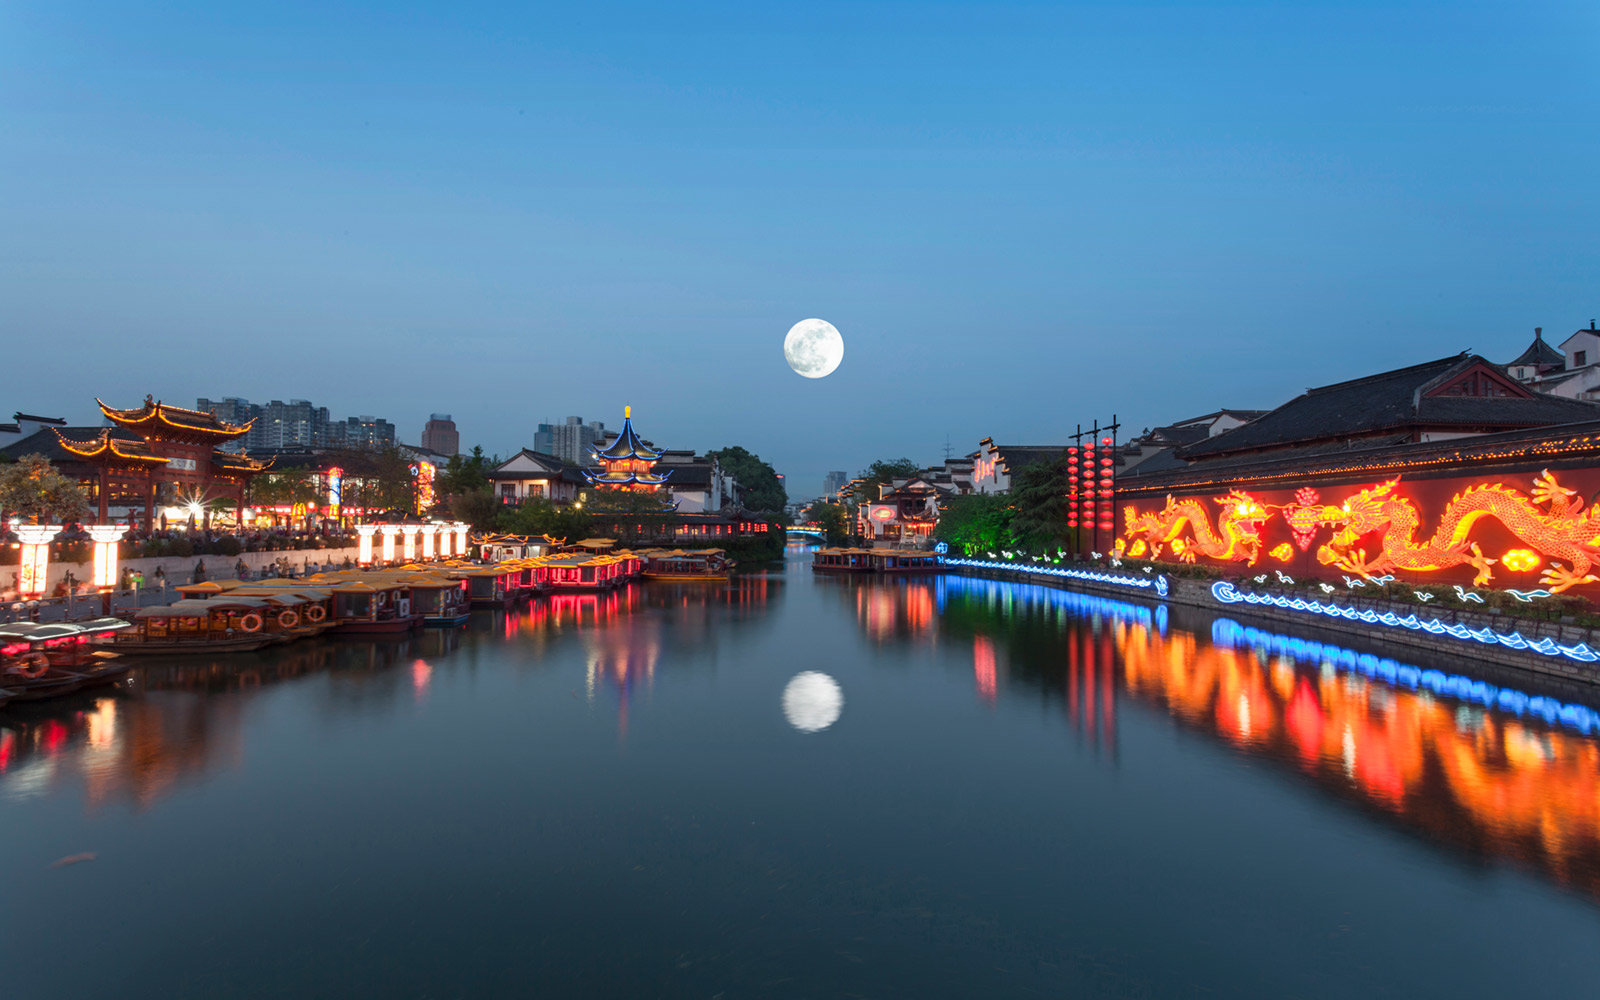 Full moon over Qinhaul River in Nanjing Jiangsu China